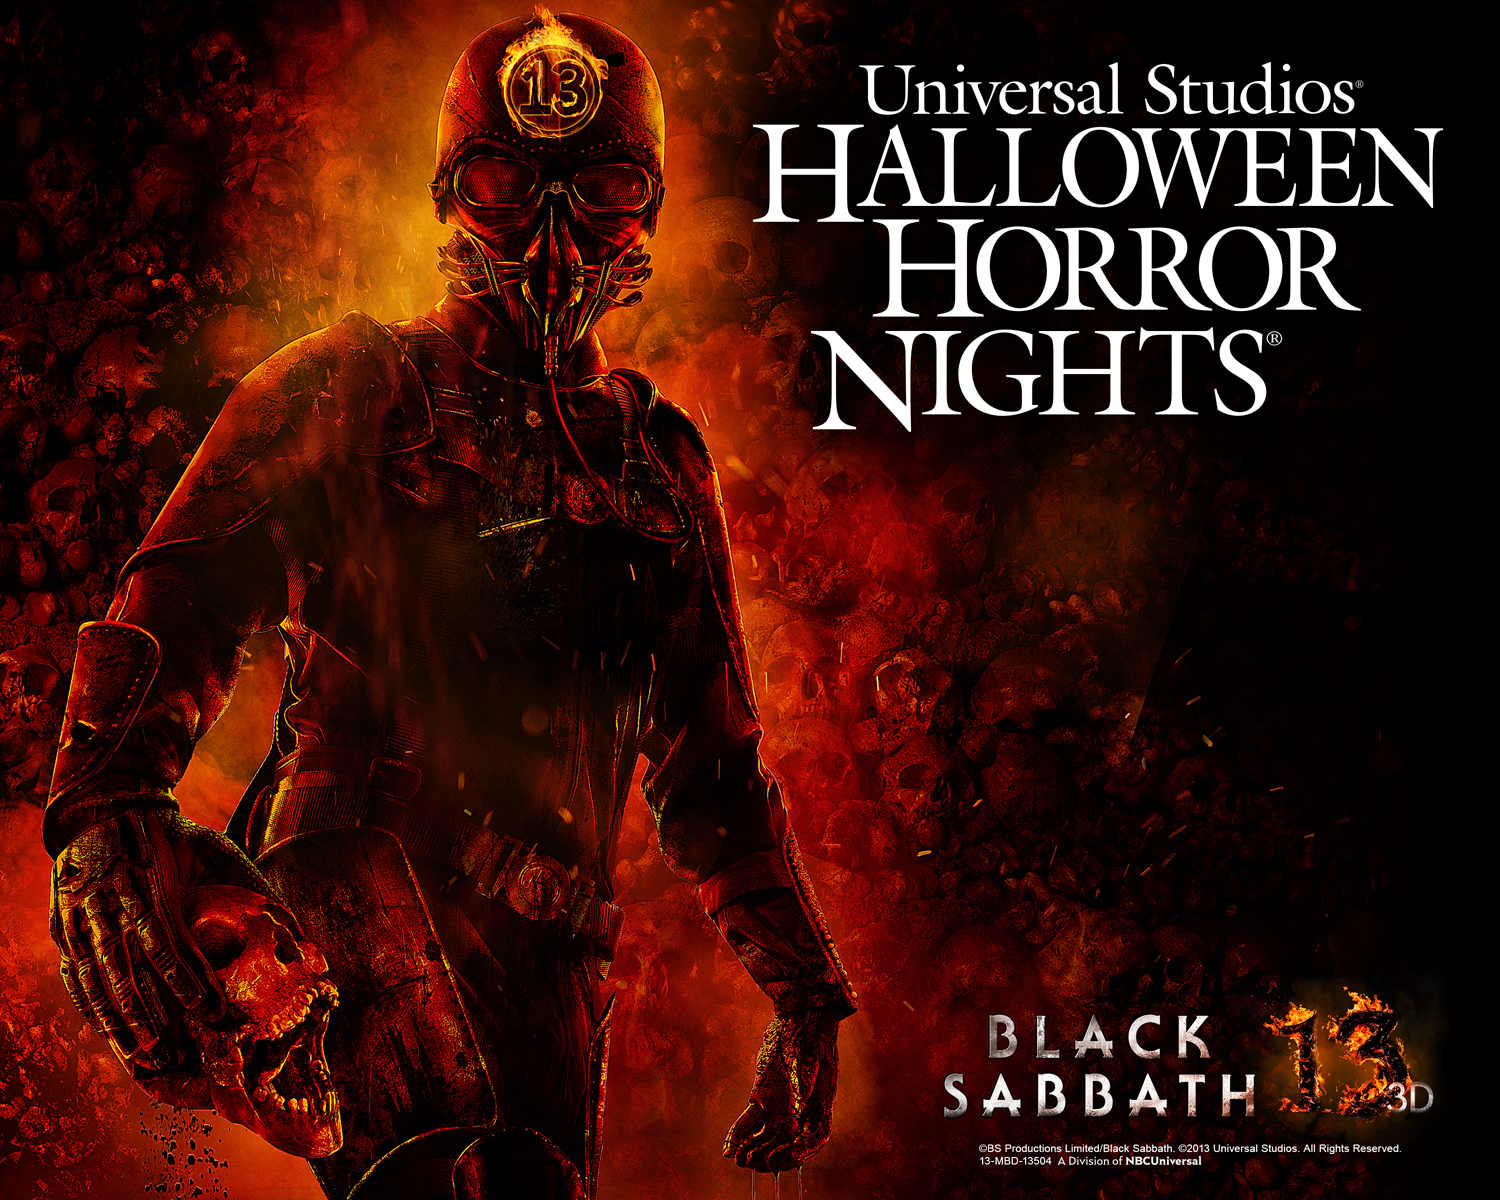 black sabbath 13 3d coming to halloween horror nights hollywood theme park adventure - Halloween Horror Night Theme